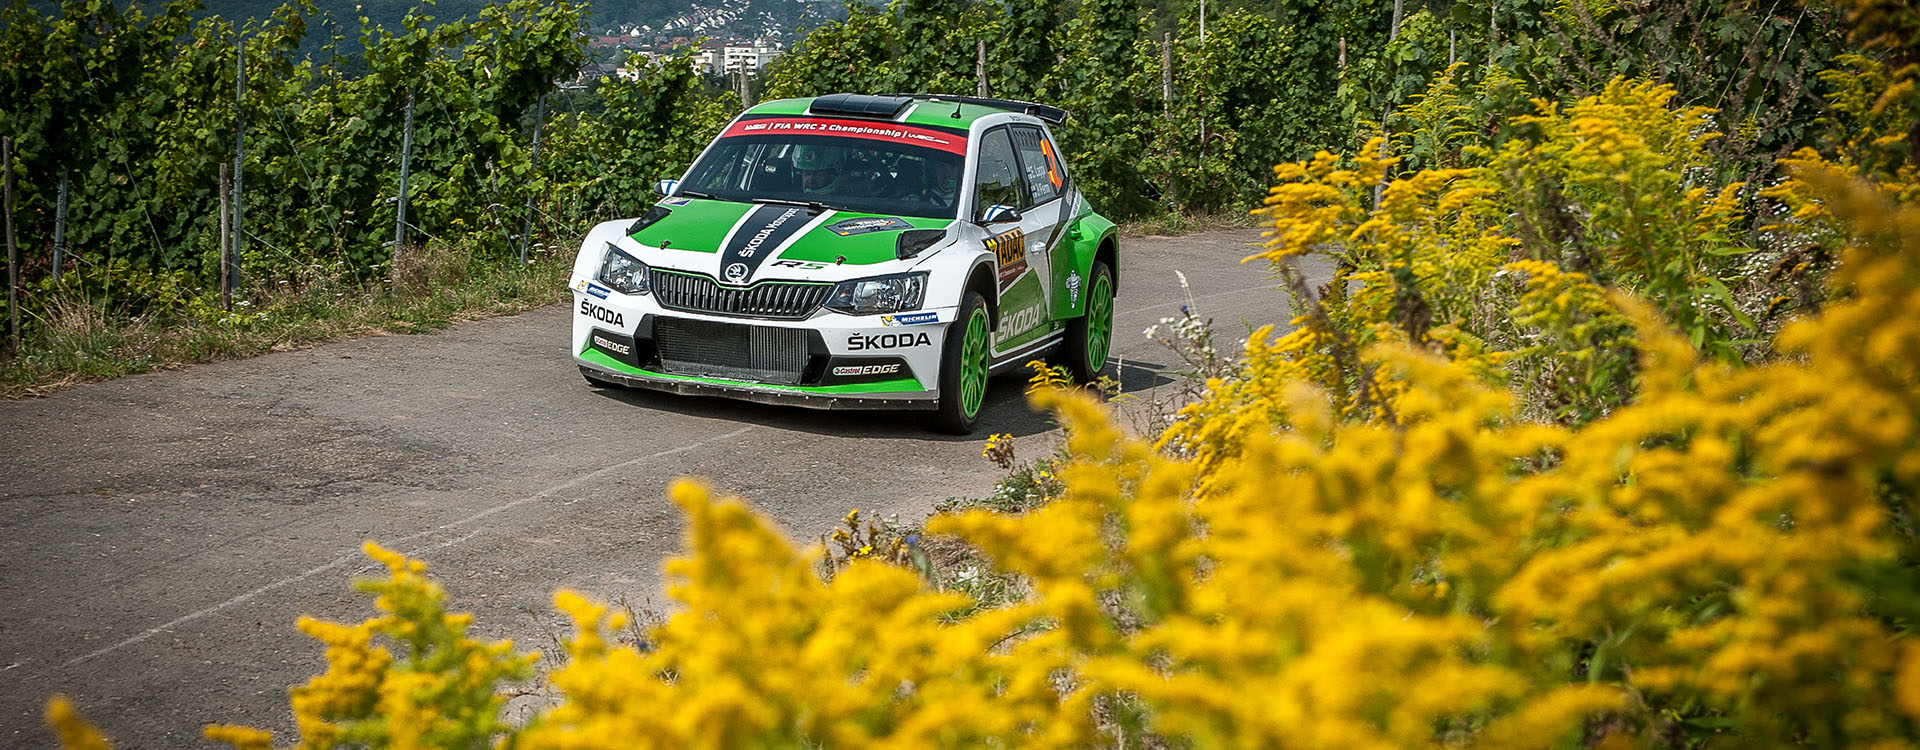 PHOTO: ŠKODA Motorsport at the Rallye Deutschland 2016